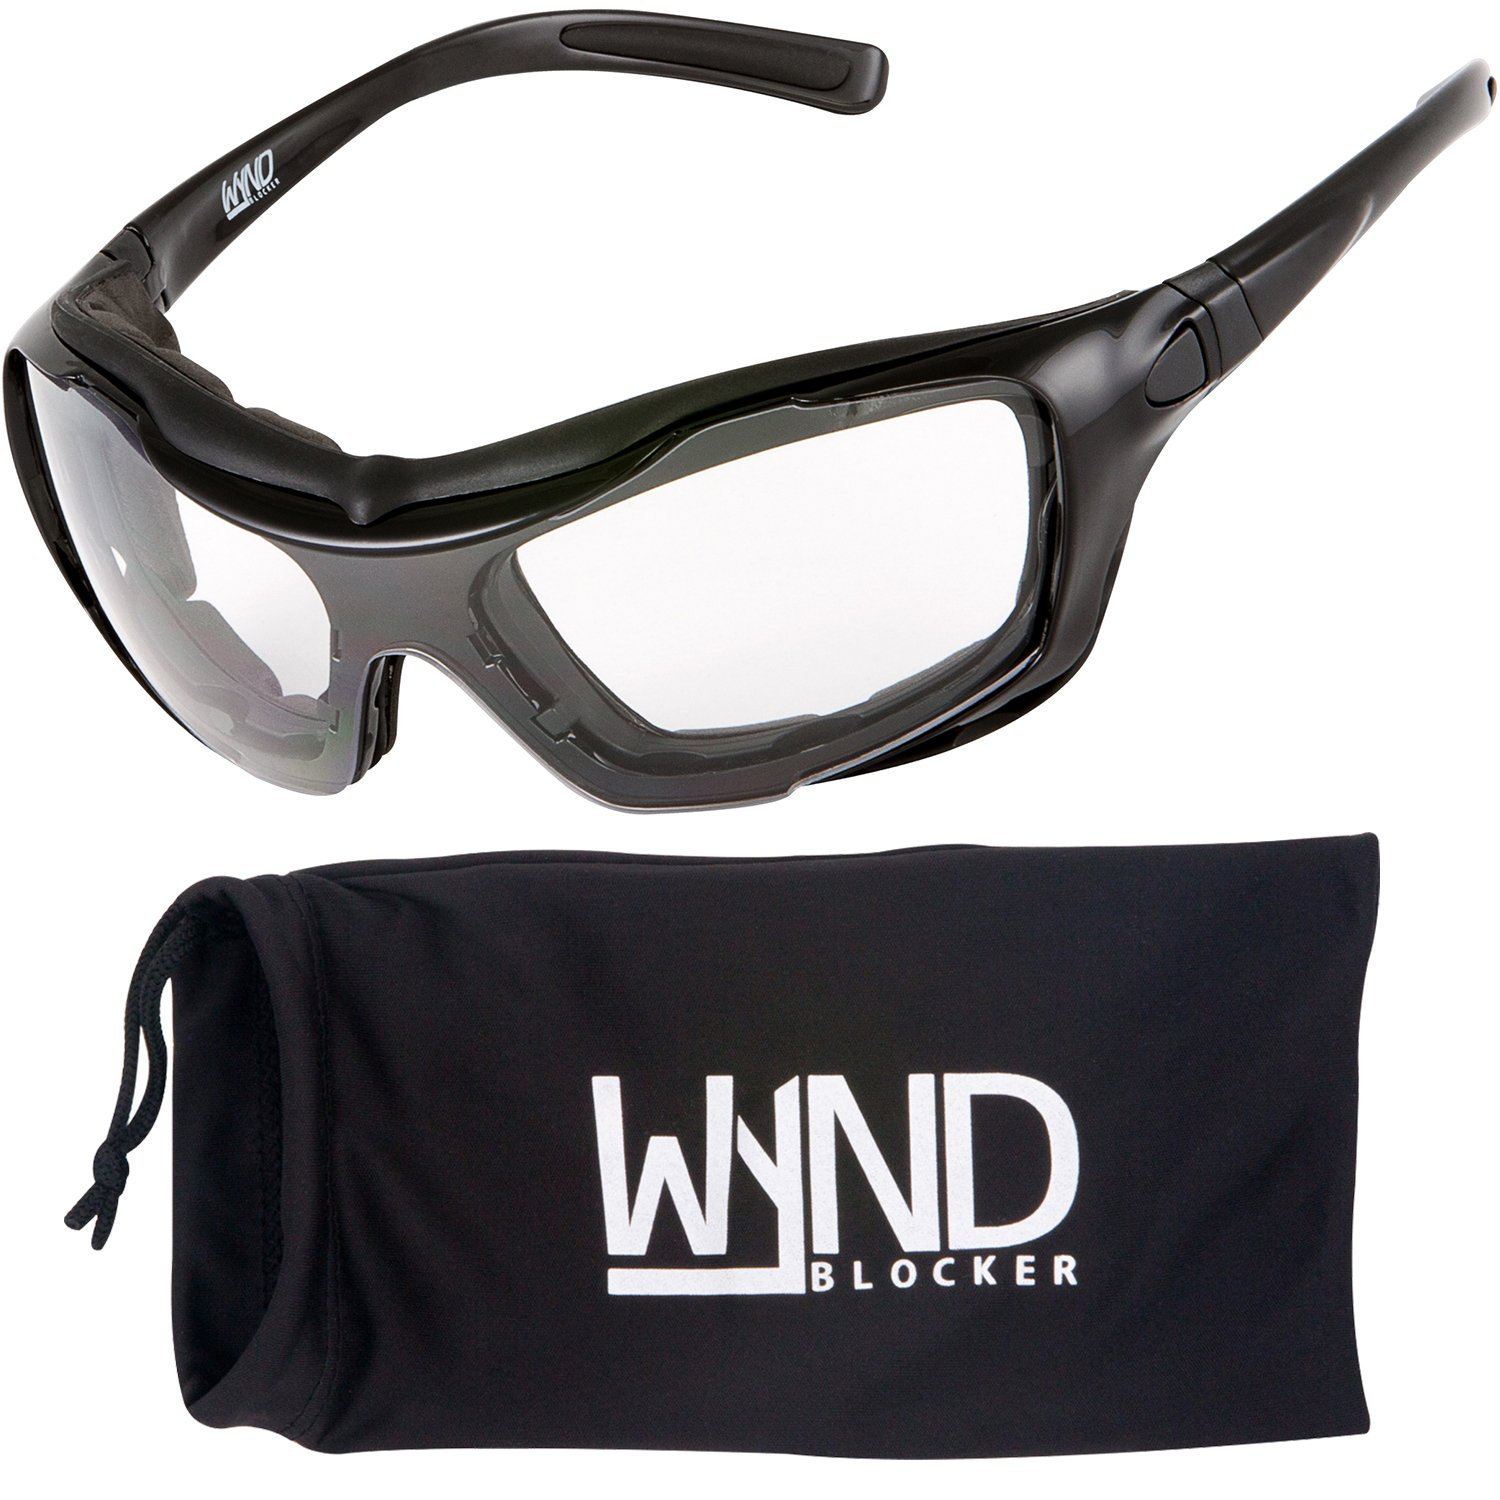 WYND Blocker Large Motorcycle Riding Glasses Extreme Sports Wrap Sunglasses, Black, Clear